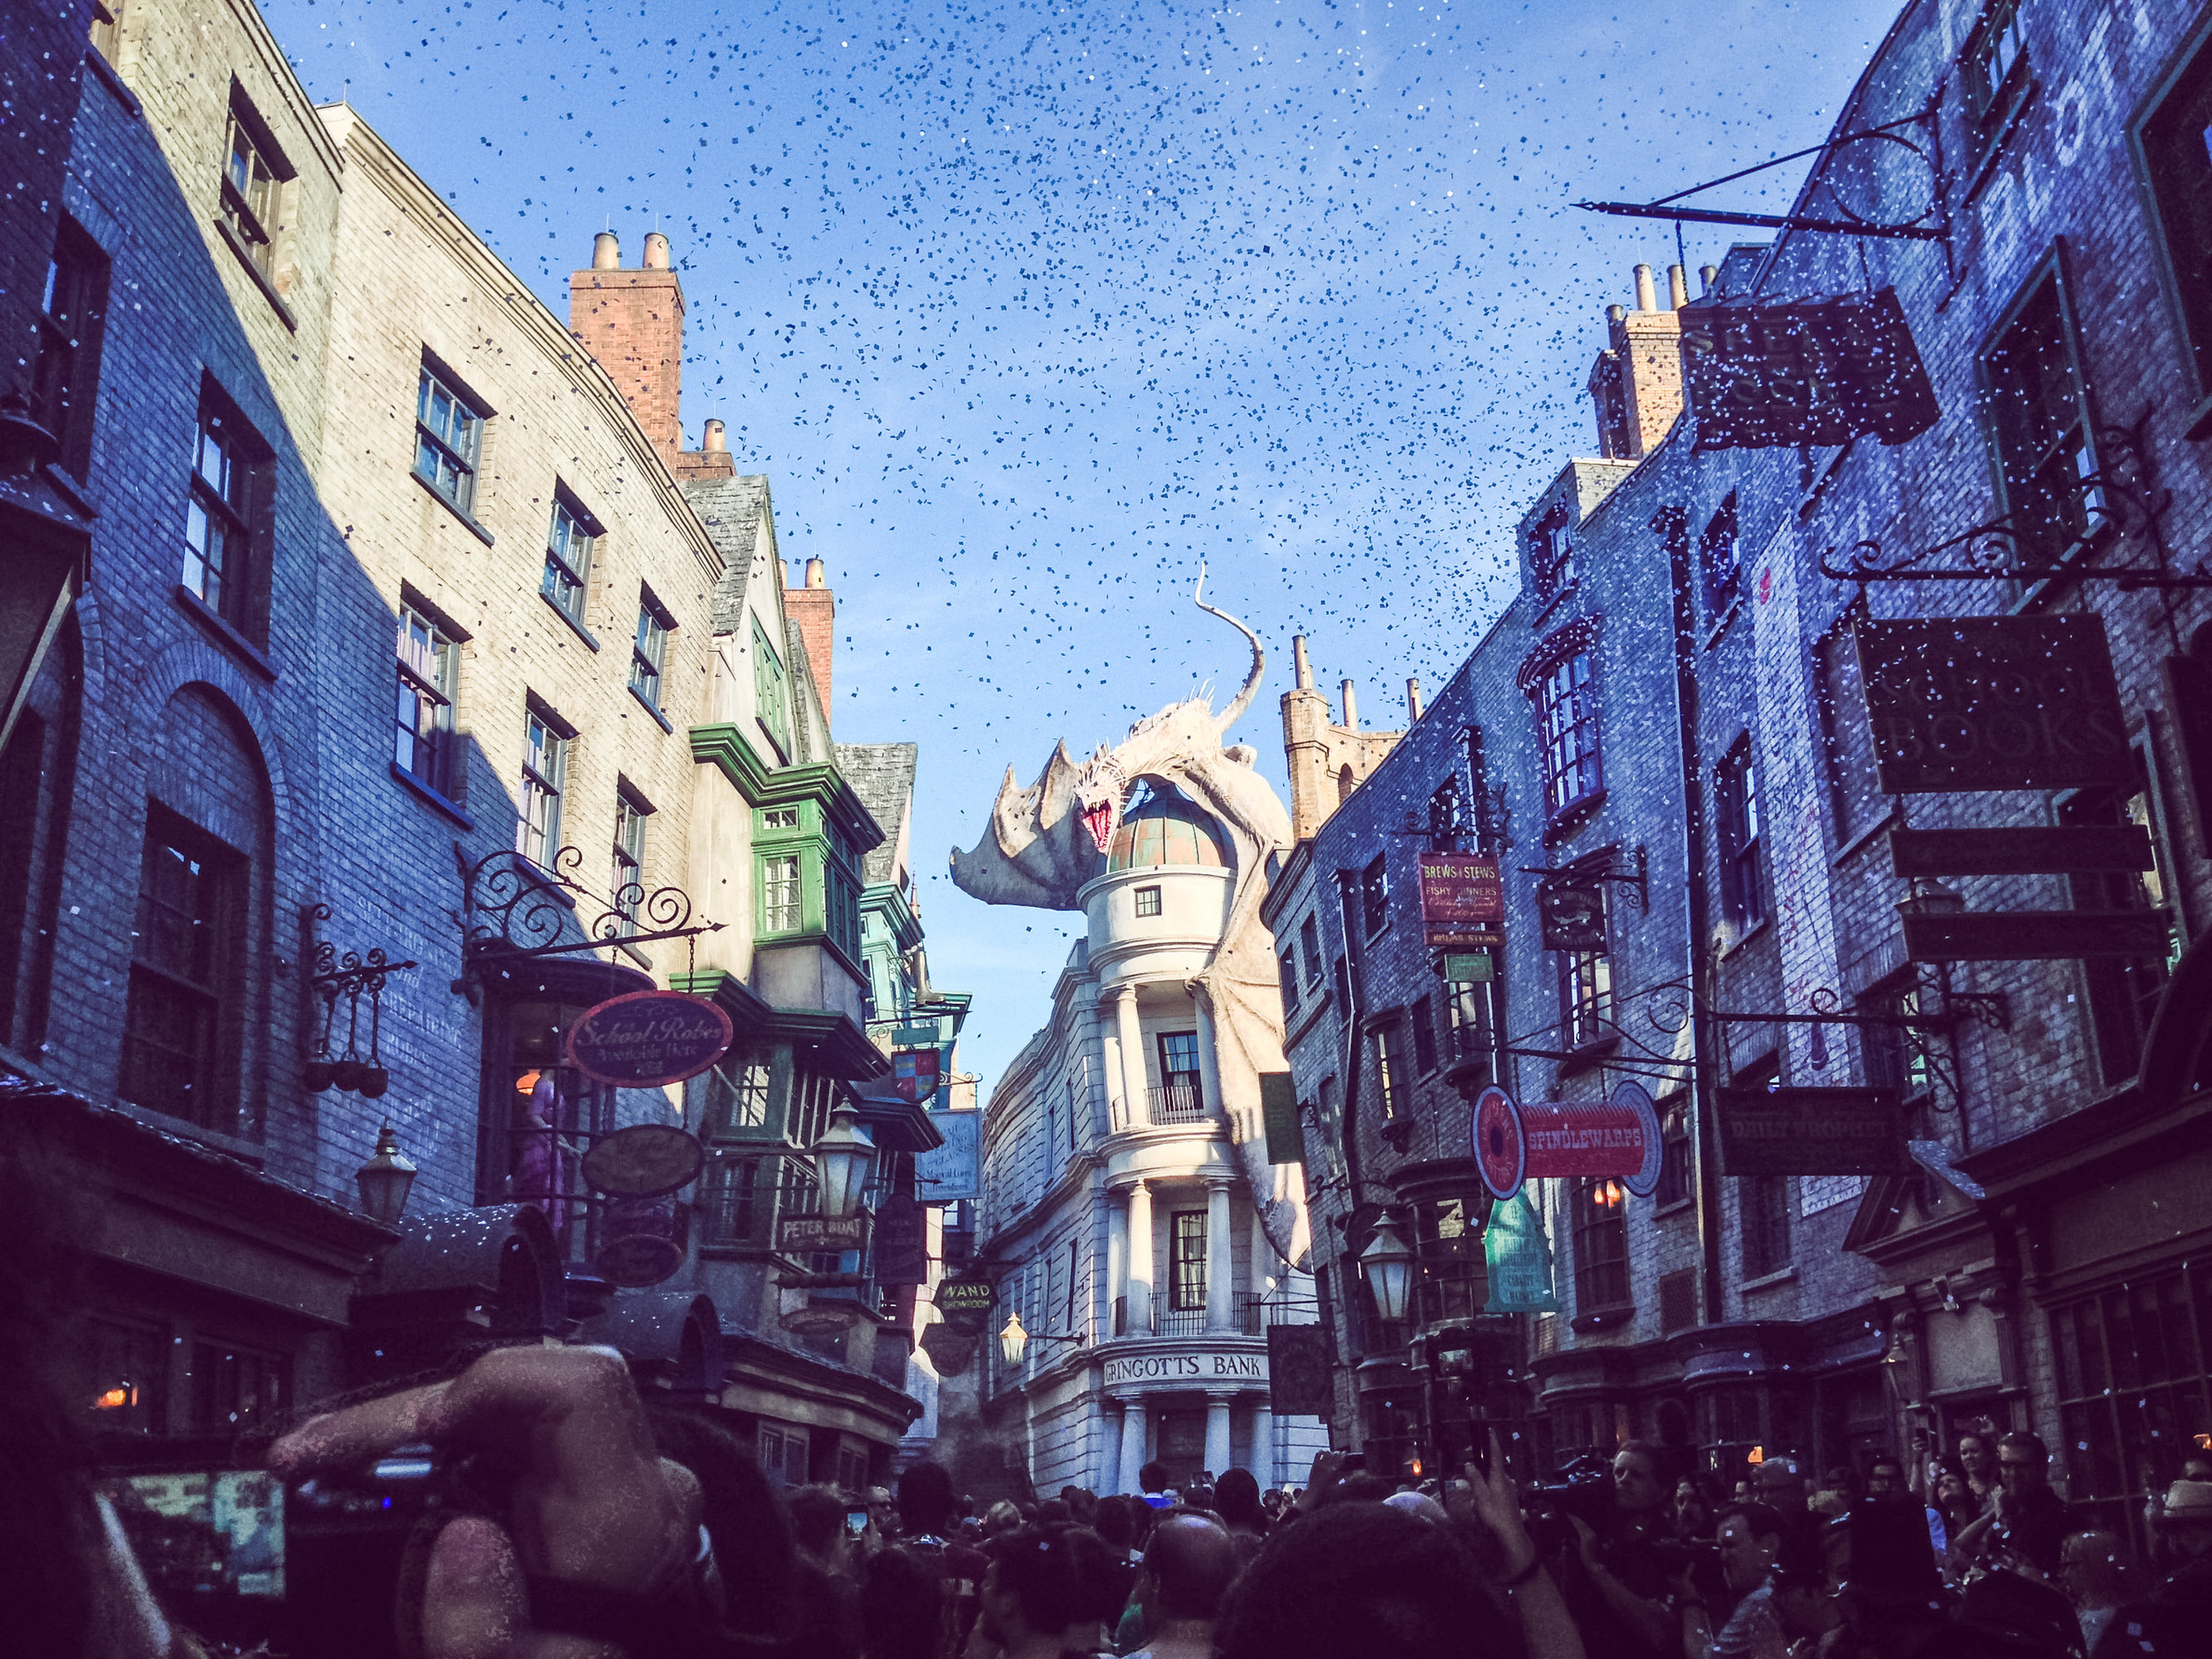 """july 8th, 2014.   no time for sleeping. best friends. hundreds of die hard harry potter fans cheering at the universal gates at 5am. sprinting through the park to reach london first. anticipation. owls in your tummy. hedwig's theme blaring. opening ceremonies. fireworks. more running. turning that corner and seeing diagon alley for the first time. confetti. wizards clapping for you on both sides and shouting """"welcome to diagon alley!"""" as you walk down a red carpet towards a fire breathing dragon. crying. weasley's wizard wheezes. more crying. escaping gringotts. bellatrix lestrange casting a spell on your cart causing you to plummet into the pits of gringotts. chills. screams. BILL WEASLEY BEING A STAR. voldemort being a sexy beast. more screaming. butter beer ice cream. knockturn alley. magic around every single corner.    i had been sad that i was missing out on the """"soft"""" openings at diagon alley before this day. bitter that i didn't have the chance to see it for myself and having to look at a constant slew of pictures. it turns out that waiting for opening day was the best decision i could make. nothing, and i mean nothing, could ever compare to the feeling we all had during the opening ceremony this morning. walking into diagon alley on a red carpet, with witches and wizards clapping on either side of us, welcoming us home. confetti falling from the sky. childhood dreams coming true with every step we took, every glance we made.    today, we went down in harry potter history."""